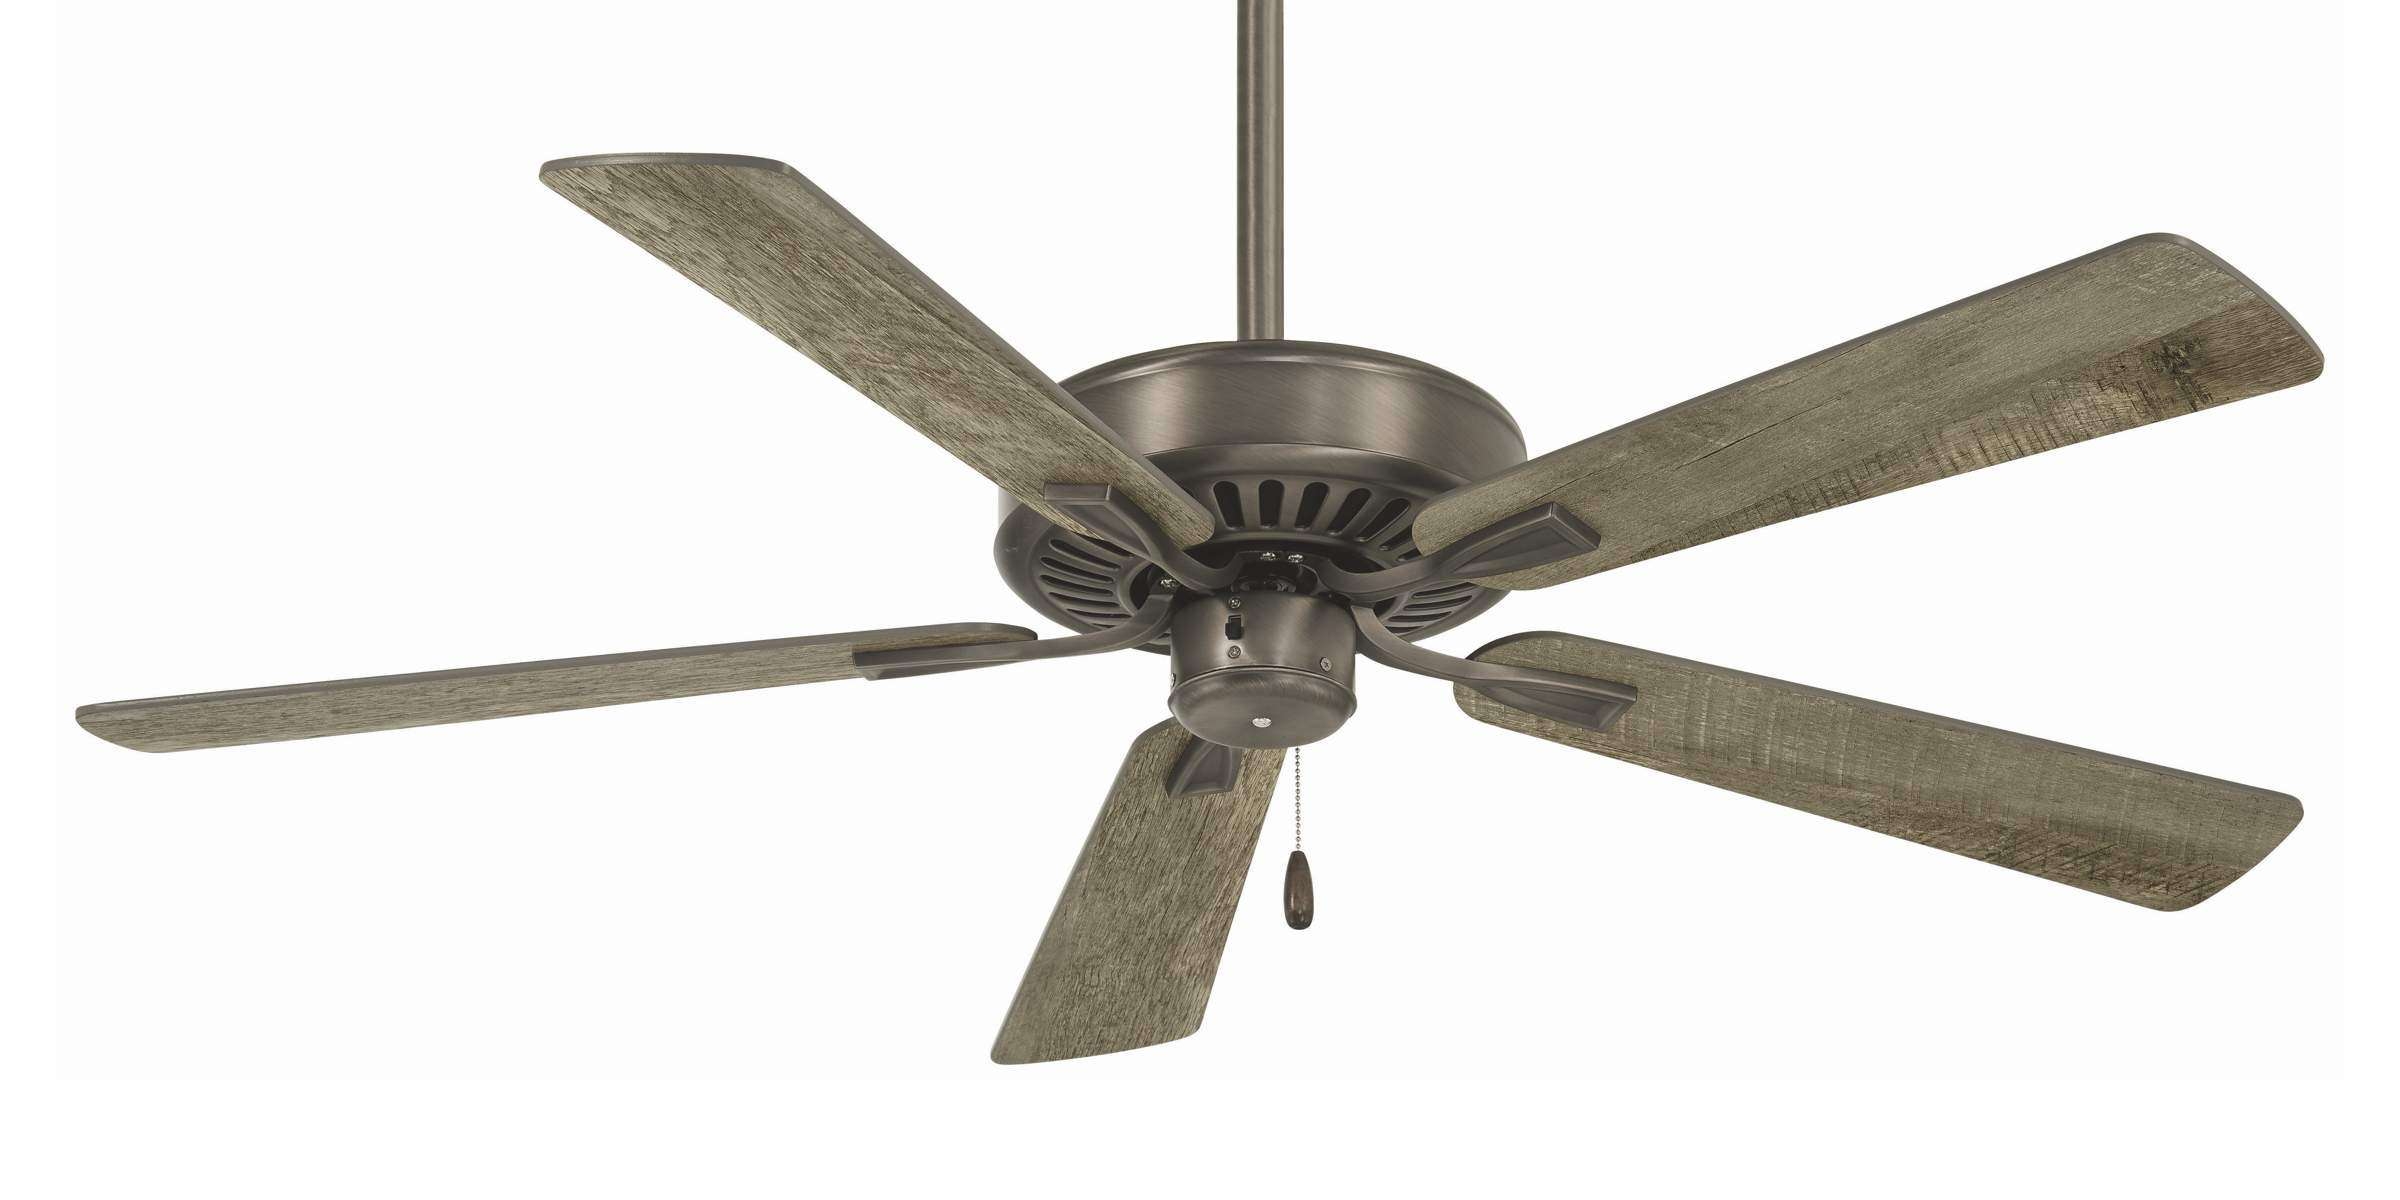 Minka Aire Contractor Plus Ceiling Fan Model F556-BNK in Burnished Nickel